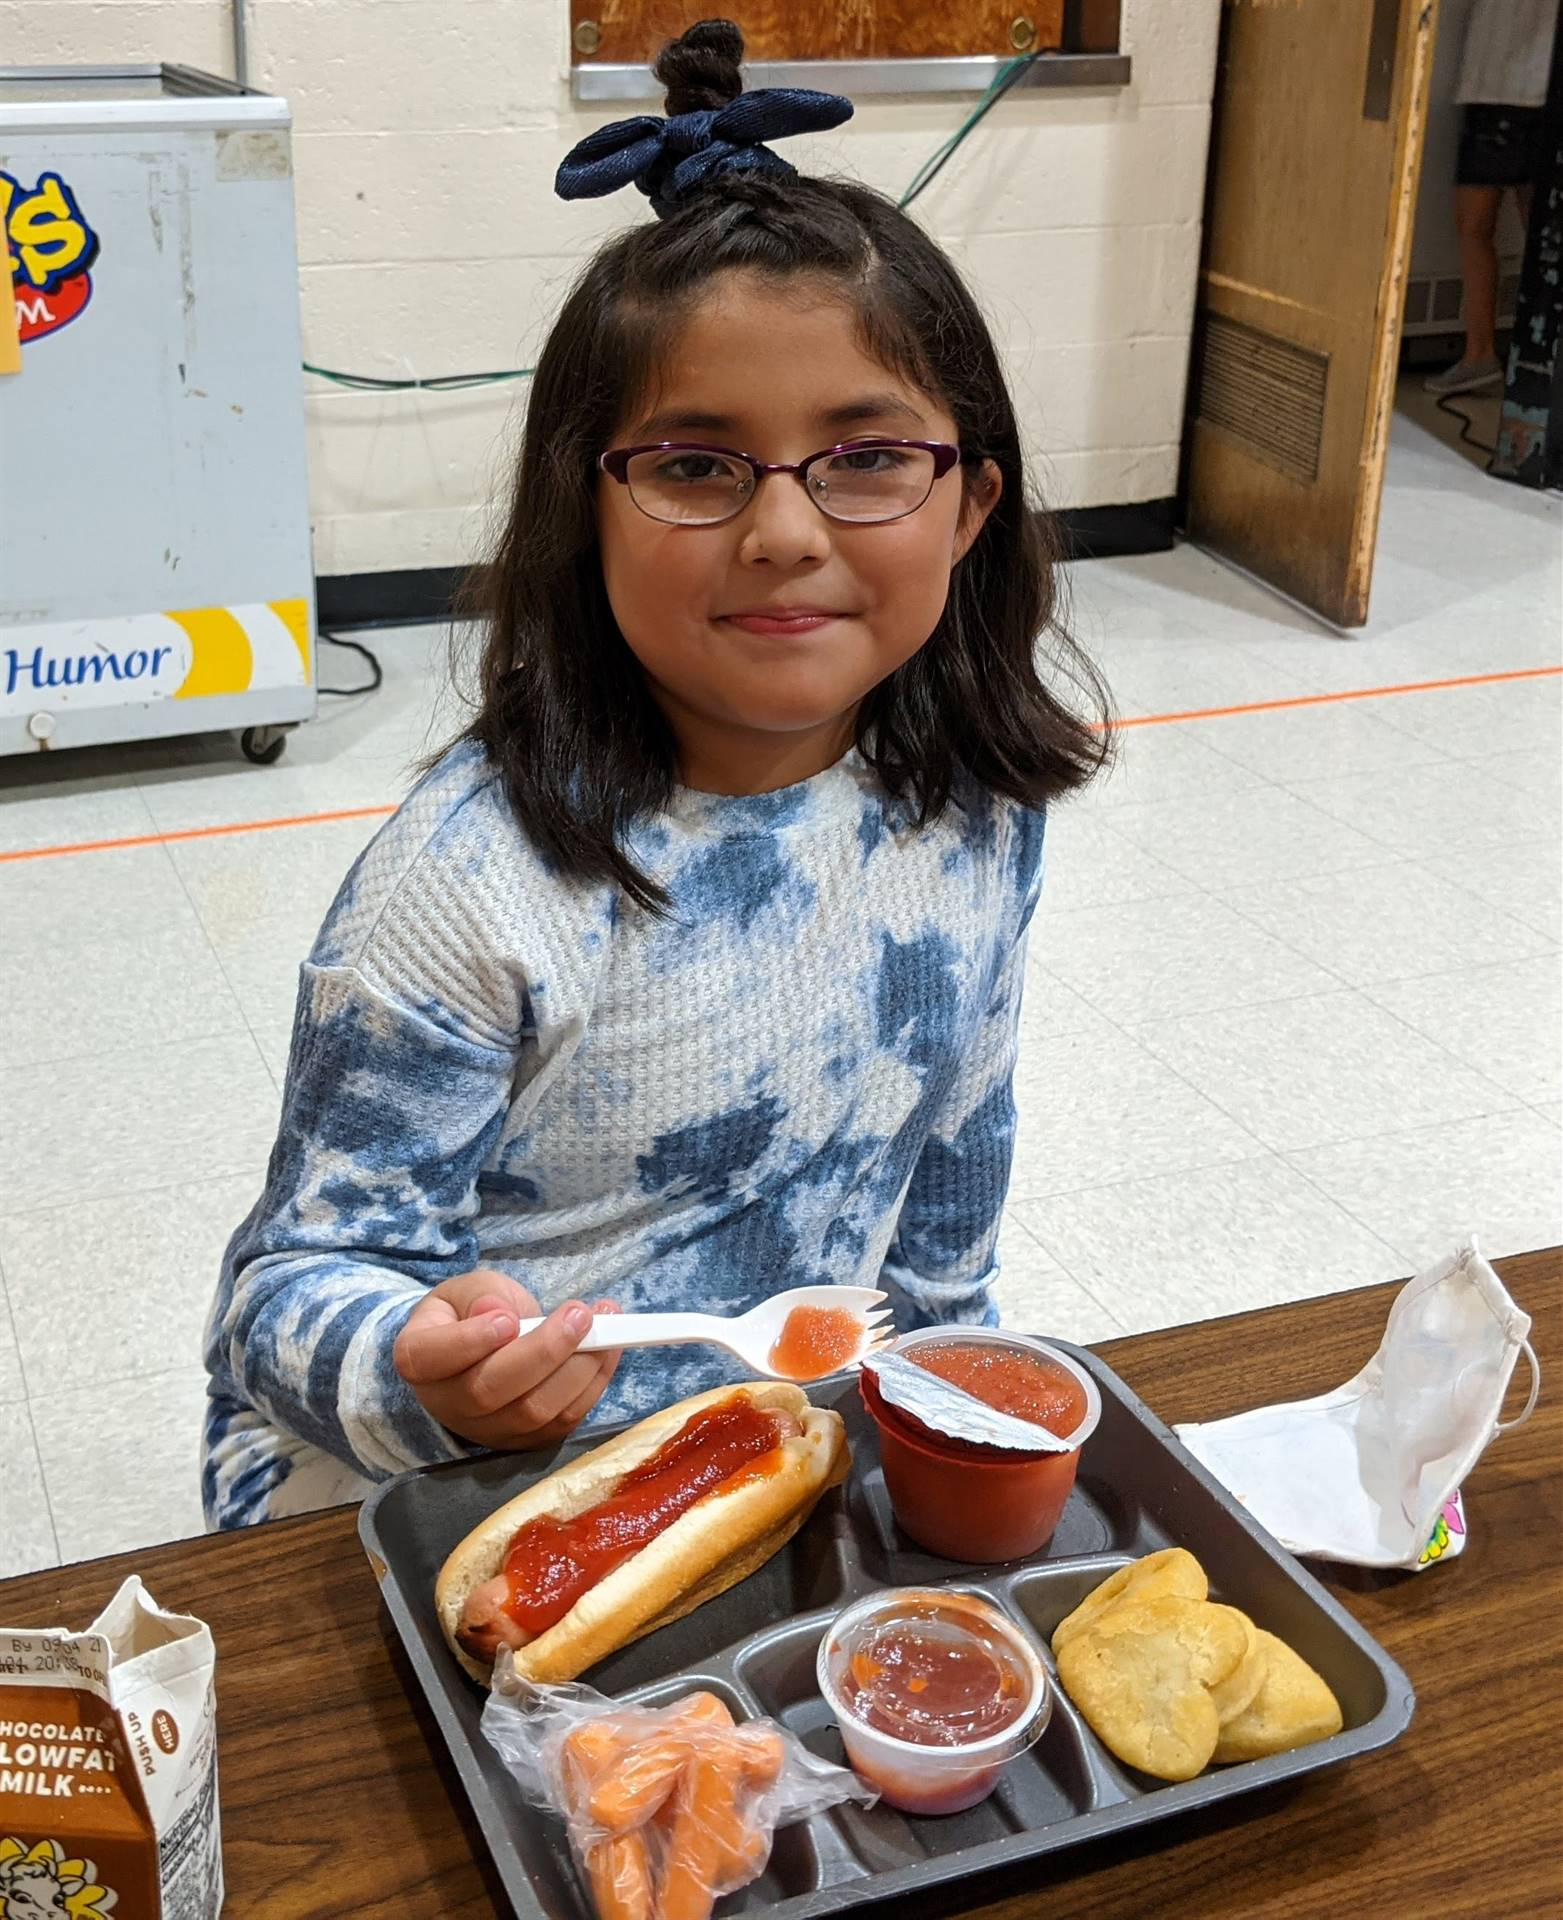 Photo 21:  Munson student seated at the lunch table with her lunch on a tray and smiling for the cam